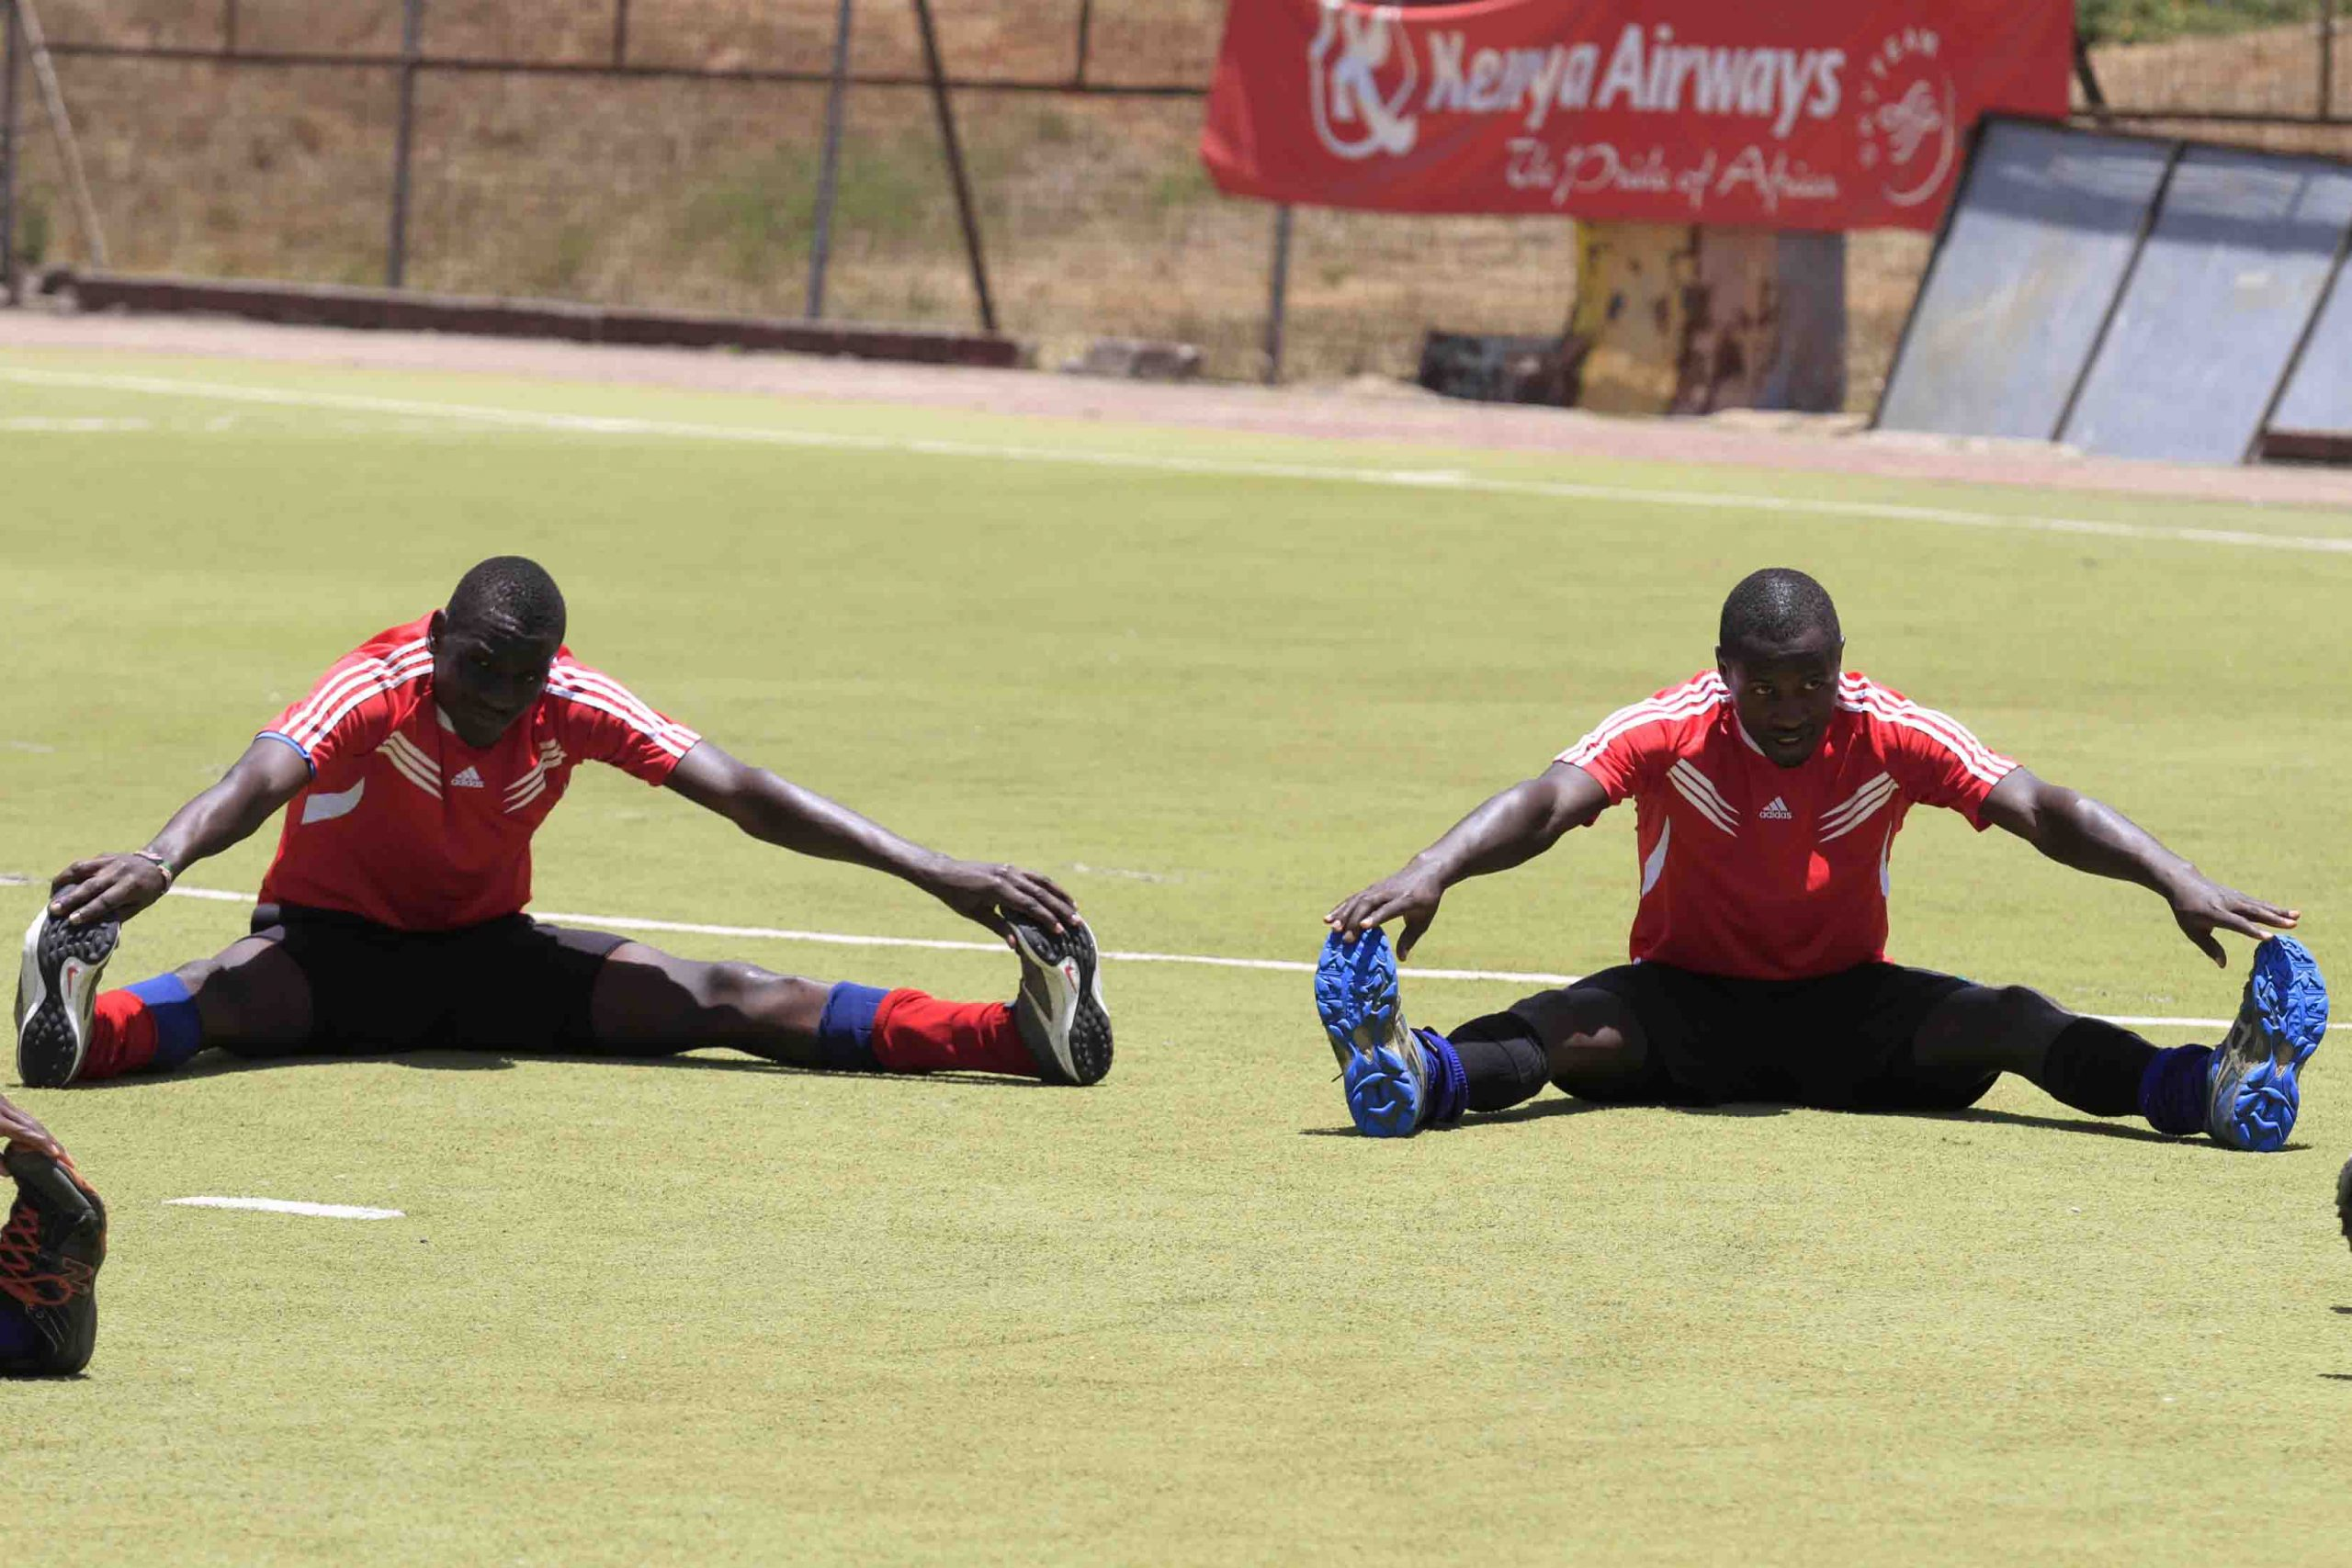 Constance Wakhura (Right) and Calvins Kanu during a hockey national team training exercise at the City Park Hockey Stadium. Kenya may miss the Africa Olympic hockey qualification tournament due to lack of funds. www.businesstoday.co.ke